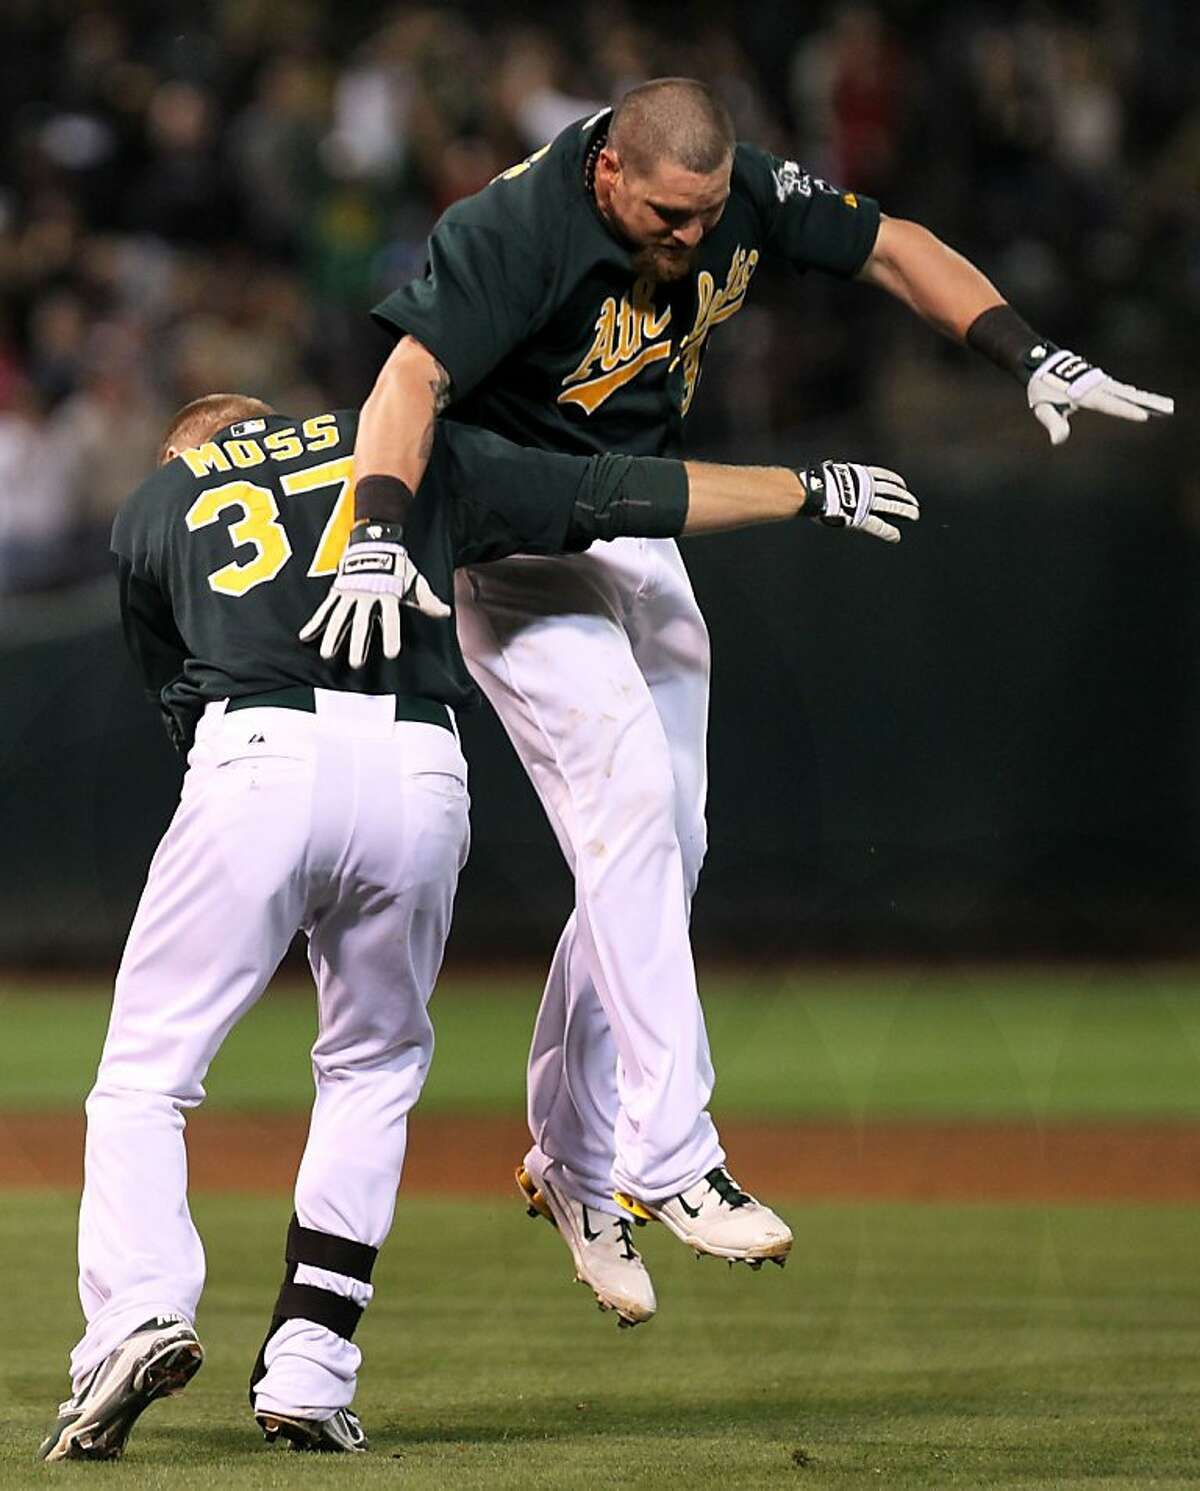 Oakland Athletics Brandon Moss celebrates his walk-off base hit that scored the A's winning run with teammate Jonny Gomes in the 9th inning of their MLB baseball game with the New York Yankees in Oakland Calif., Friday, July 20, 2012.